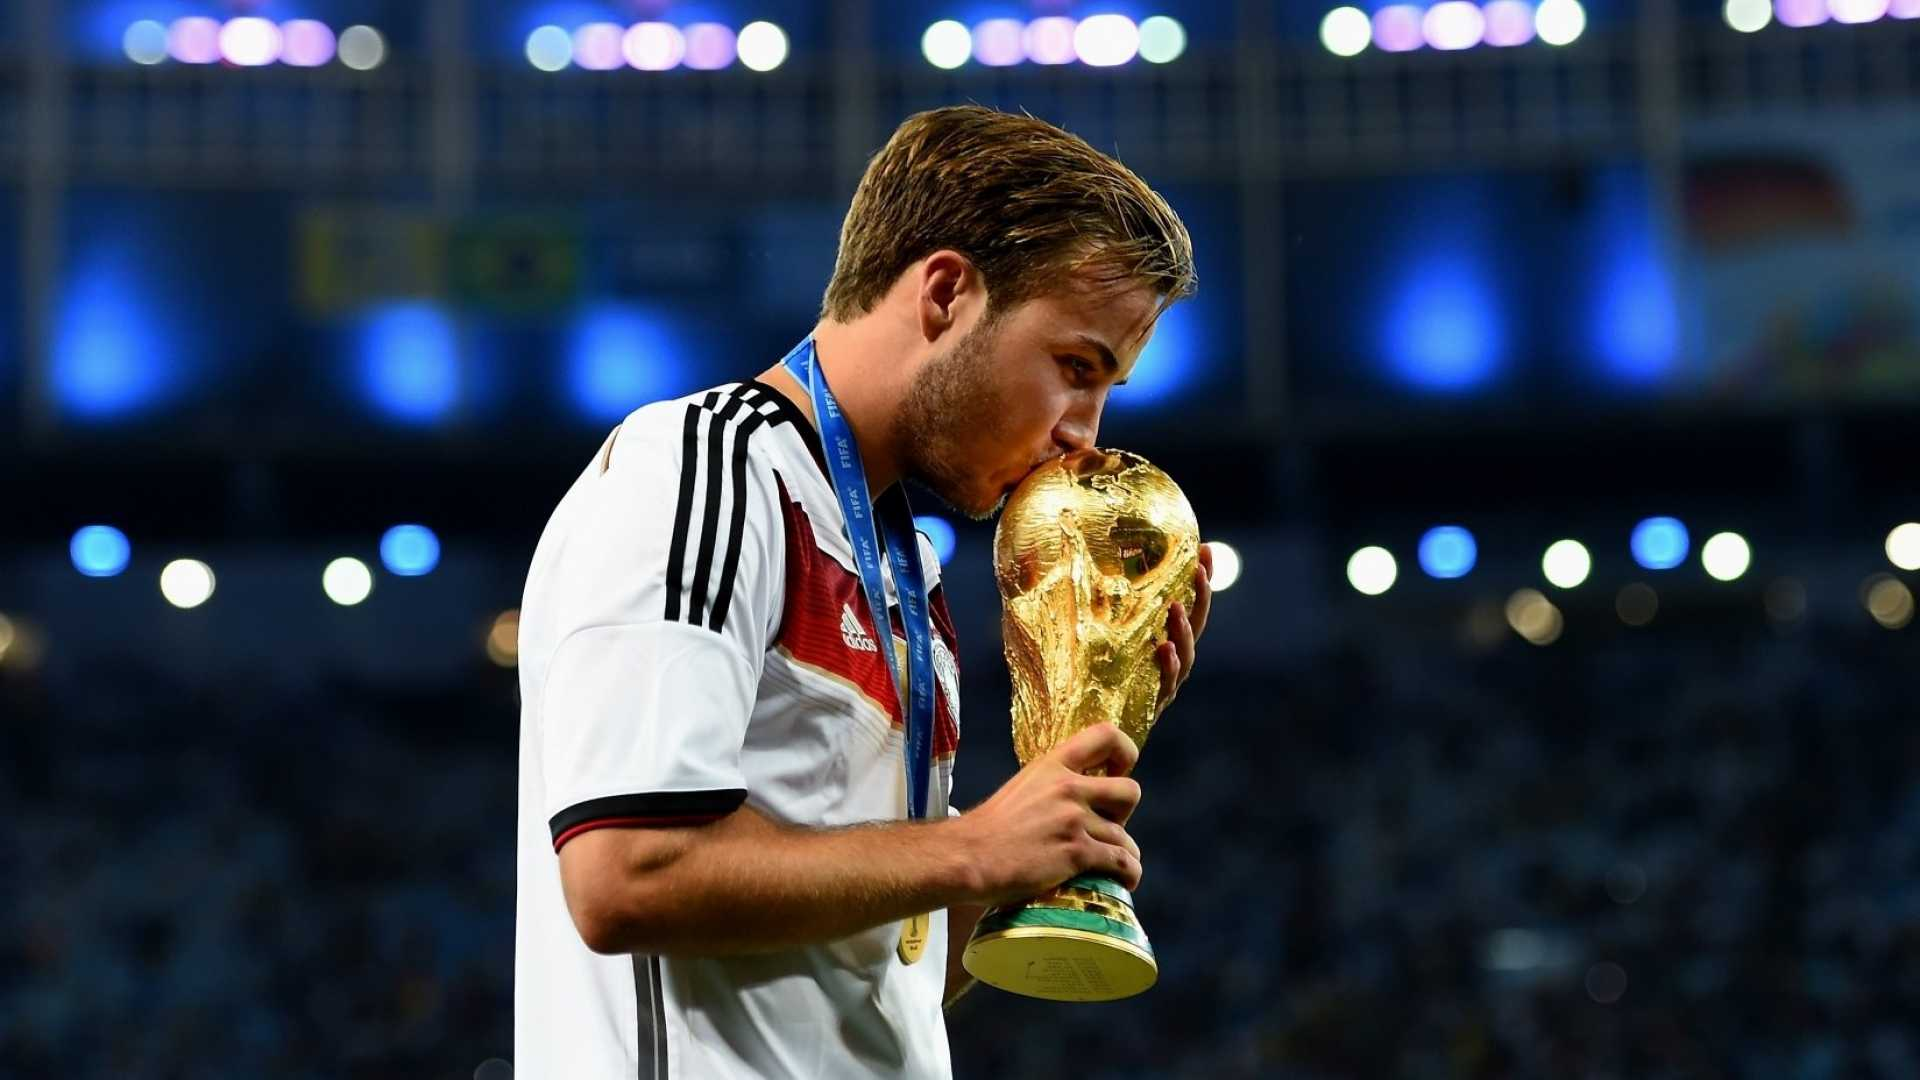 Mario Götze of Germany kisses the World Cup trophy after the 2014 FIFA World Cup Brazil final match. Unanimous's A.I. has predicted the results of the 2018 FIFA World Cup.